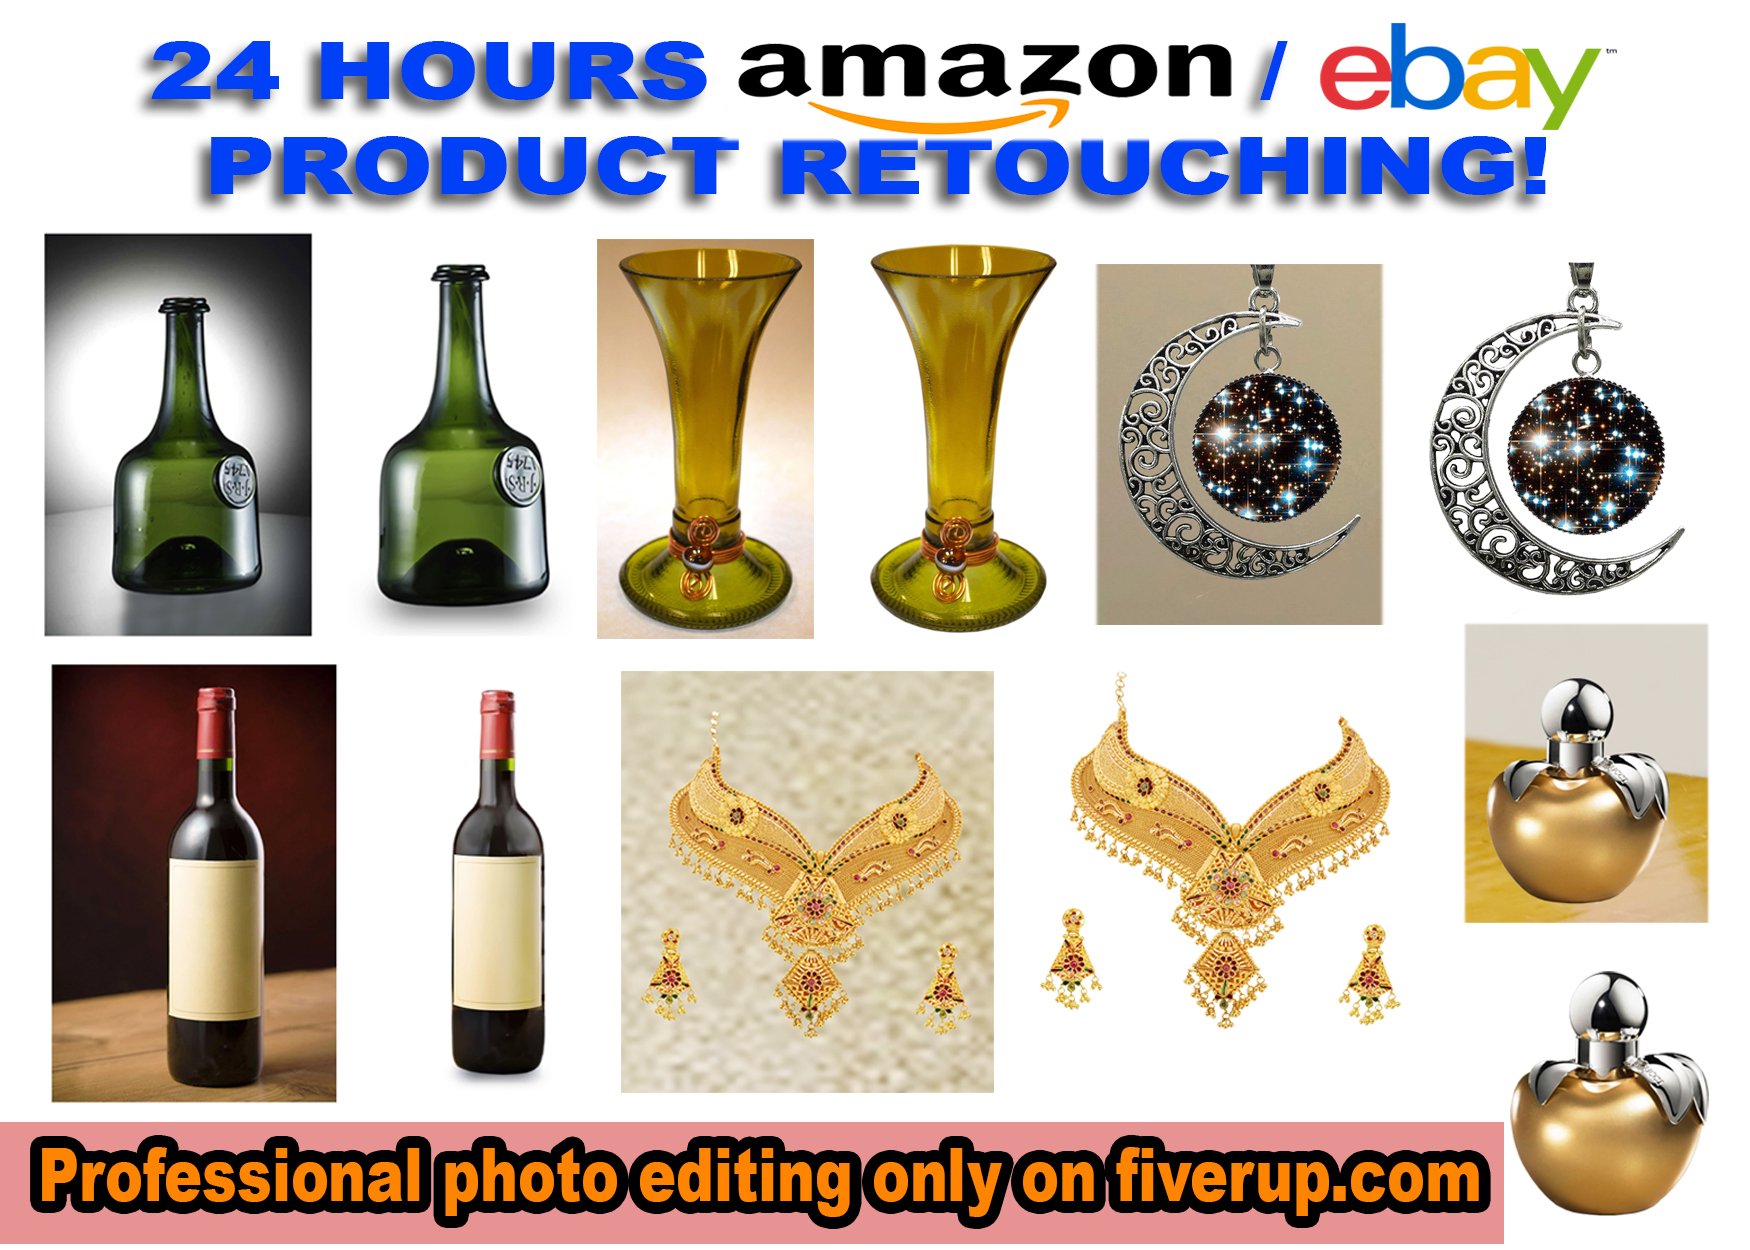 I will professionally retouch 20 product images for Amazon,Ebay in 24hrs